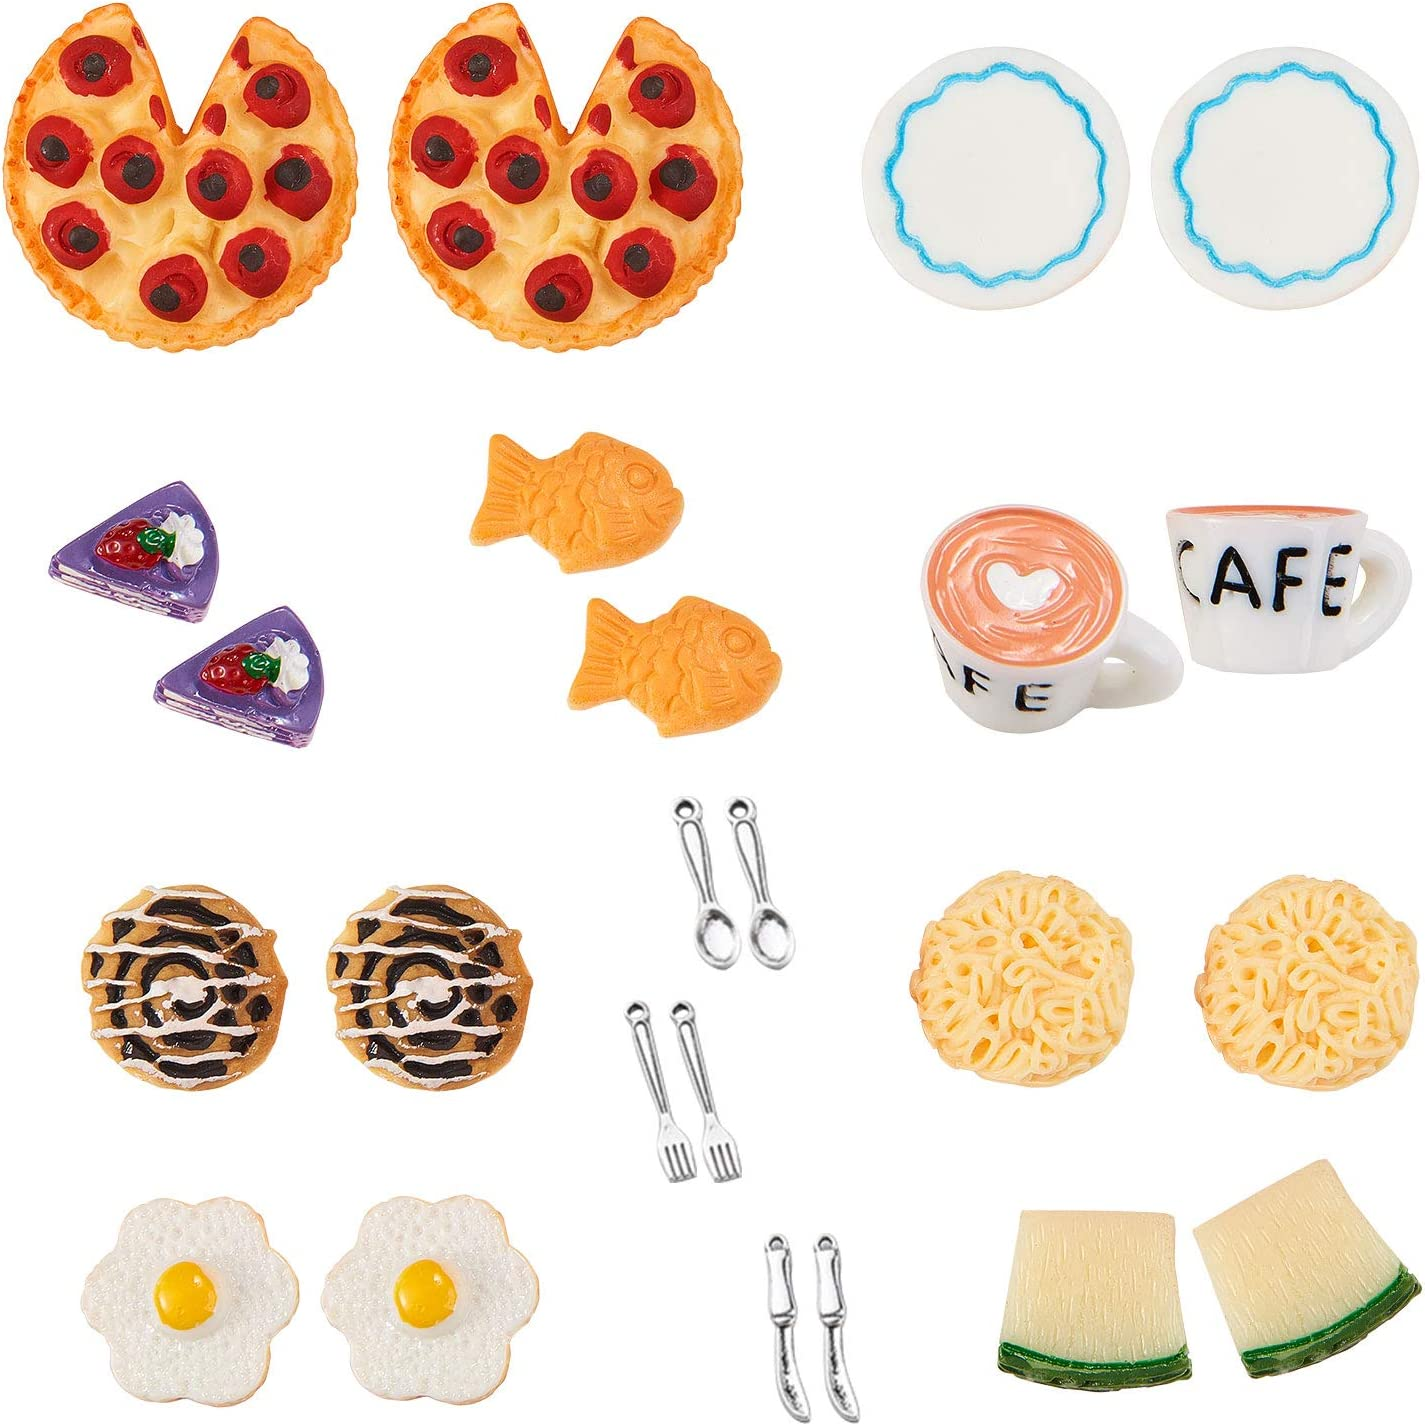 Airssory 24 Pcs Pizza Noodle Breakfast Lunch Afternoon Tea Tableware Food Simulation Drinks Toys Model Resin Cabochons Slime Charms Decoden for DIY Craft Scrapbooking